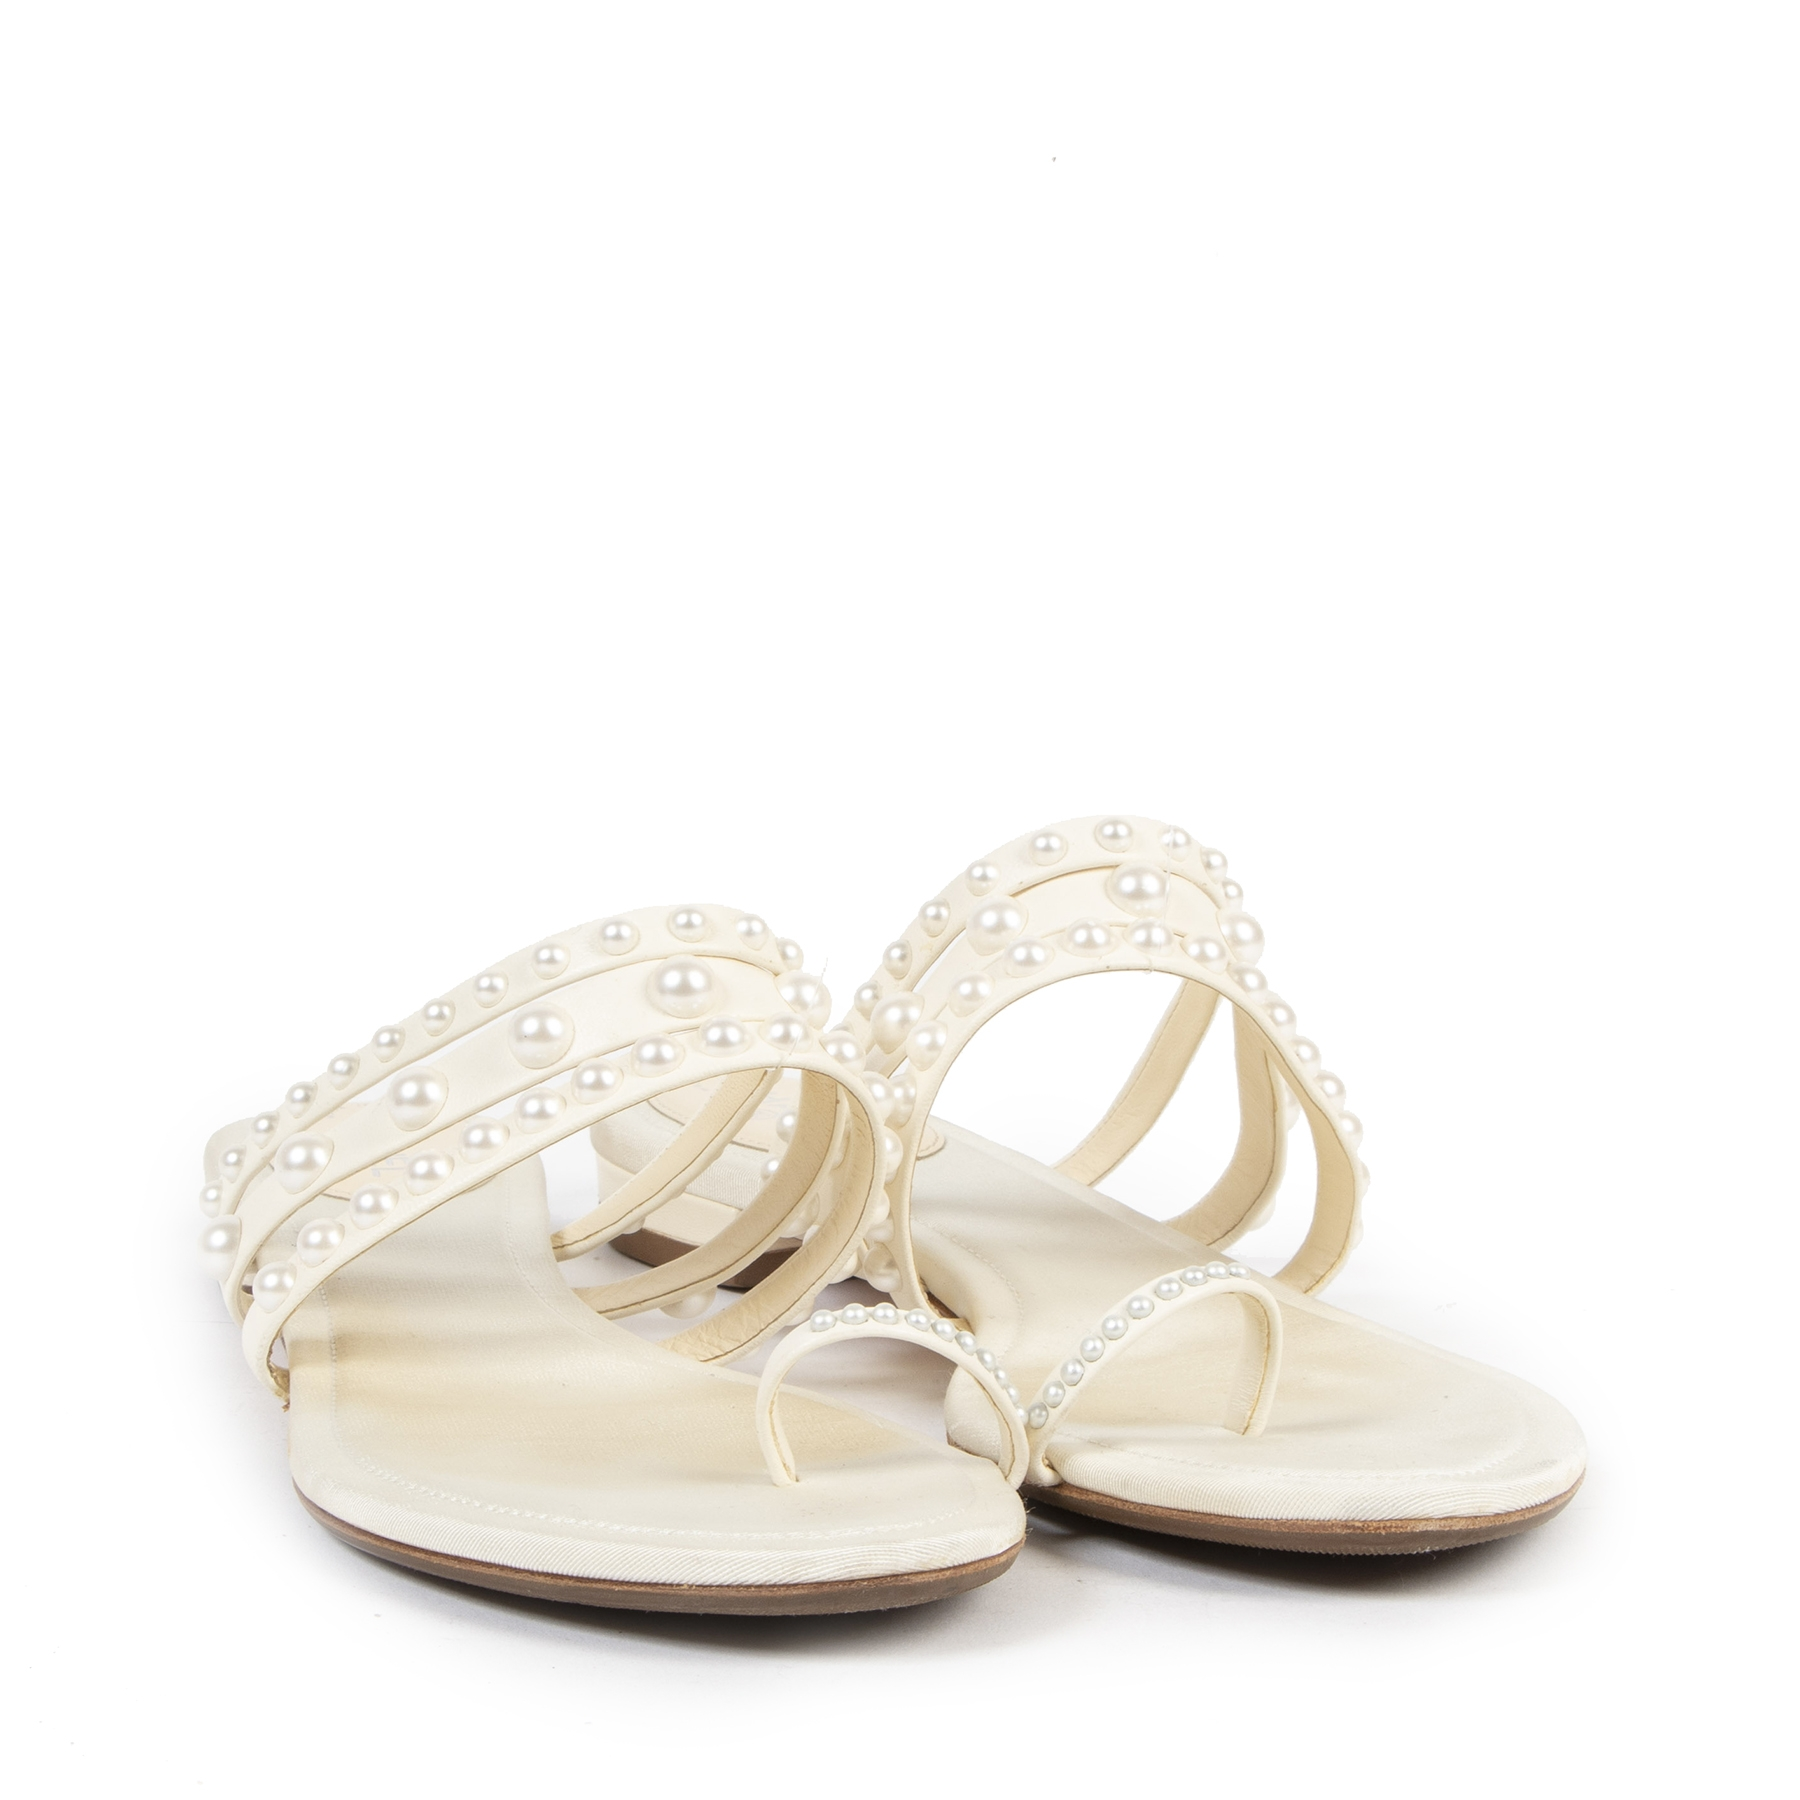 Authentieke tweedehands vintage Chanel White Pearl Toe Strap Sandals - Size 39,5 koop online webshop LabelLOV